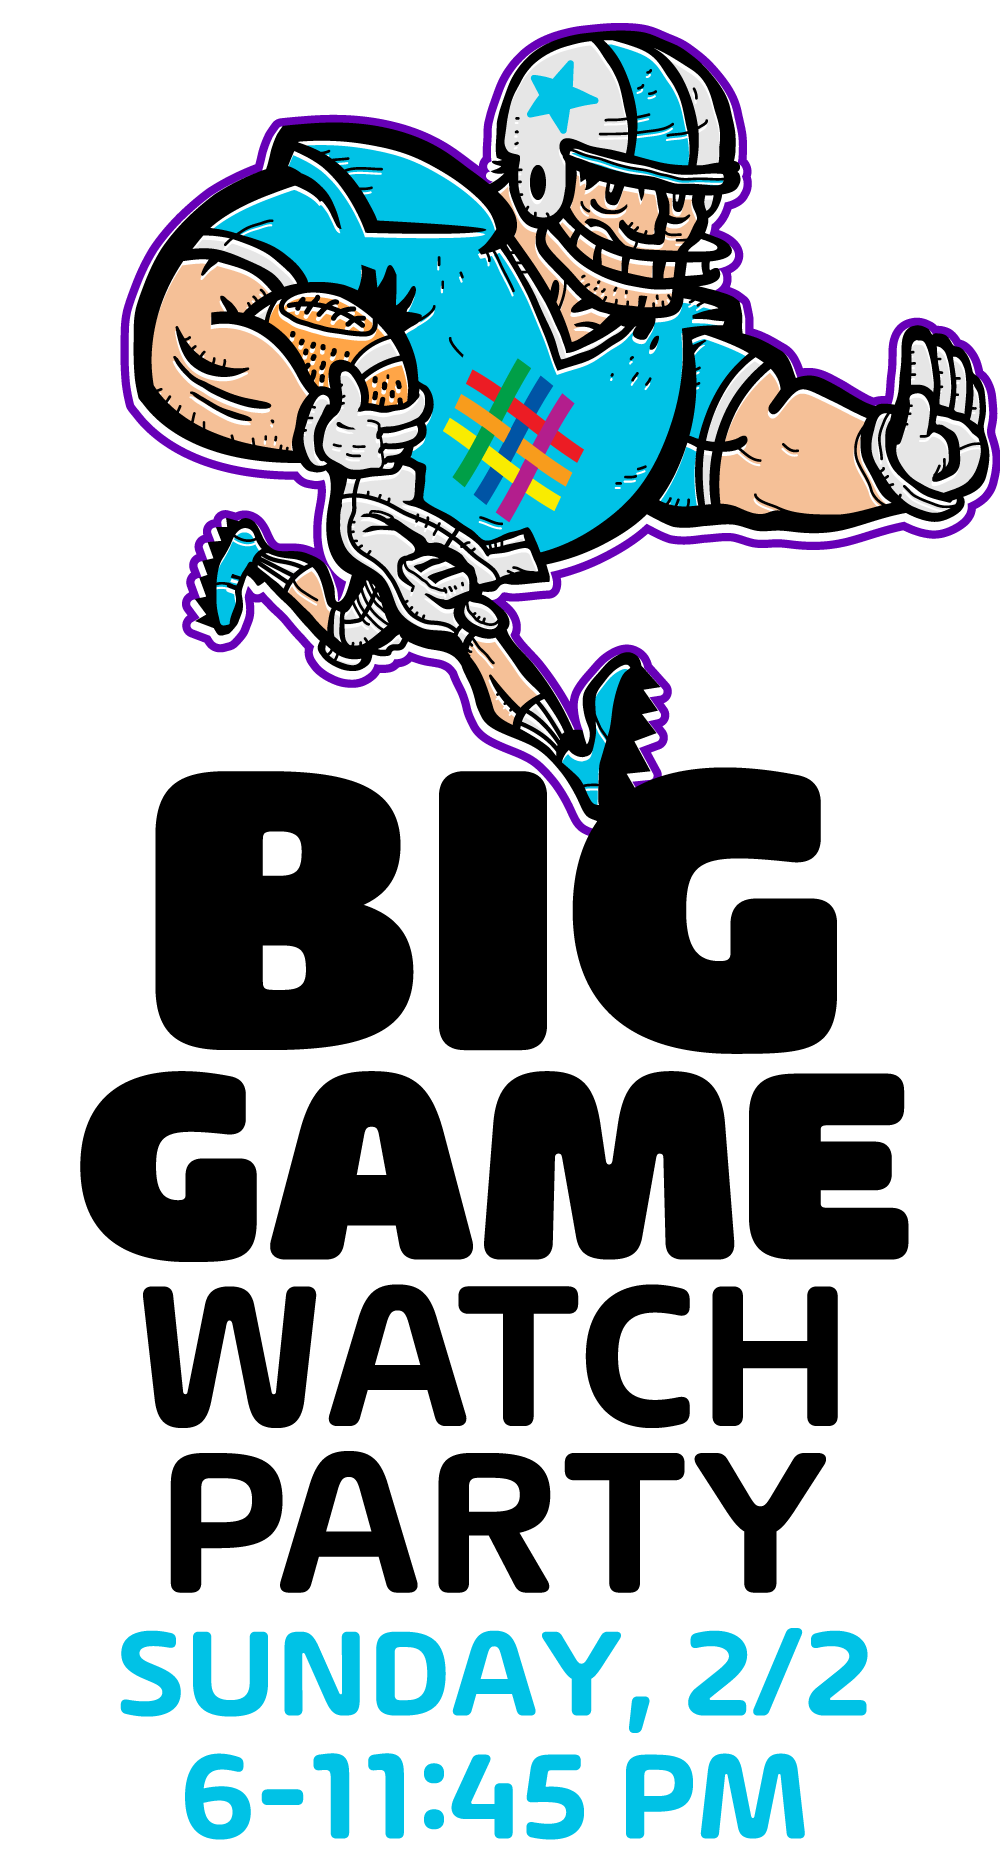 Big Game Watch Party 2/2 at Brooklyn Community Pride Center